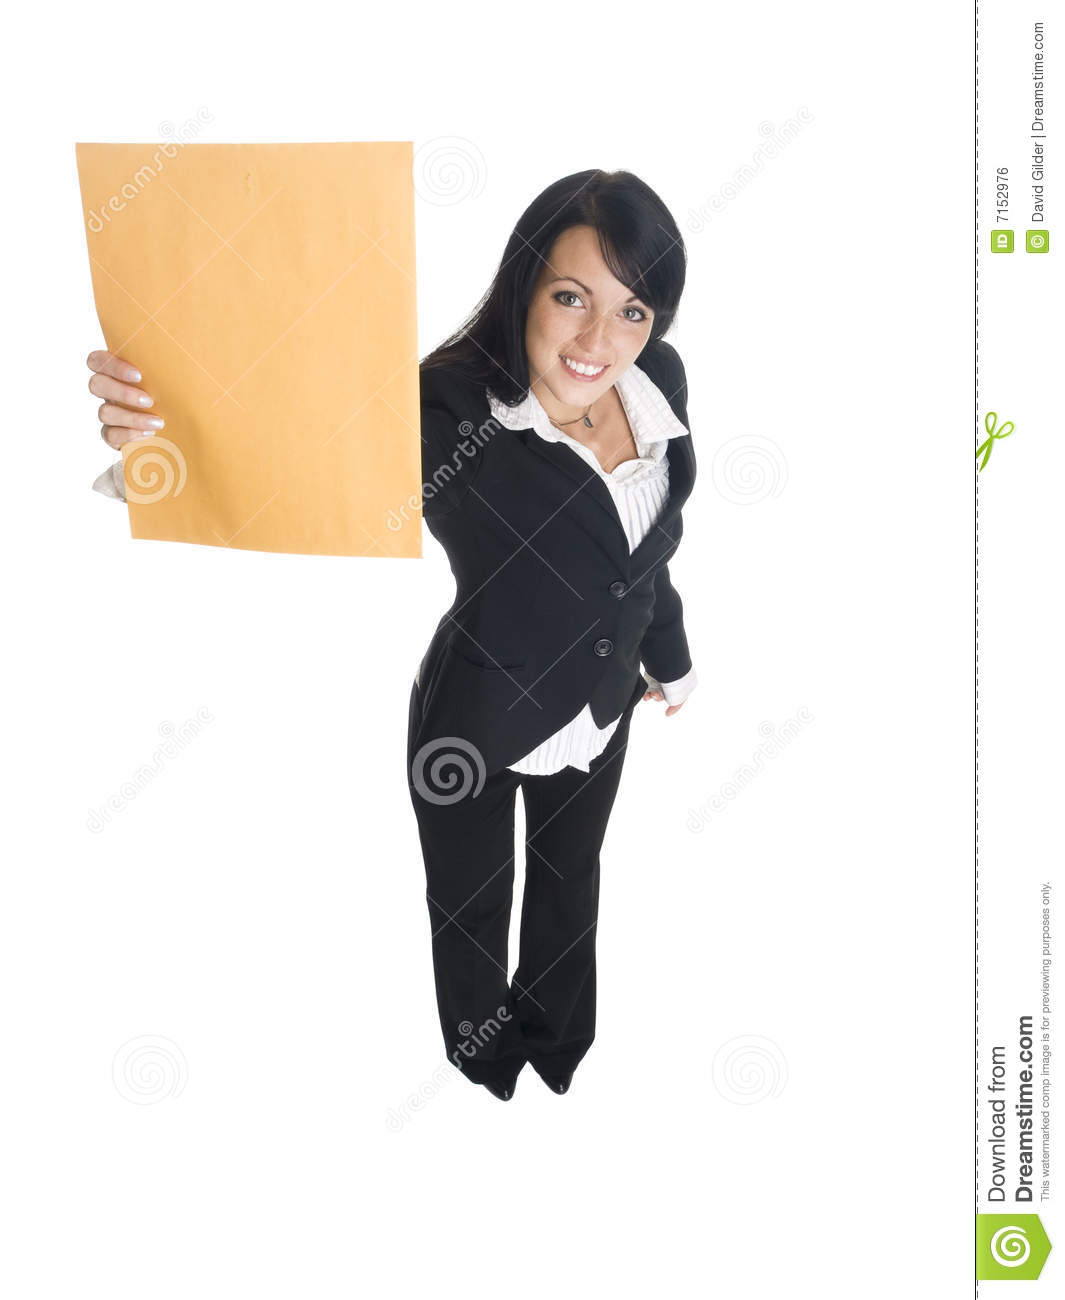 Businesswoman interoffice mail royalty free stock image for Interoffice mail envelope template